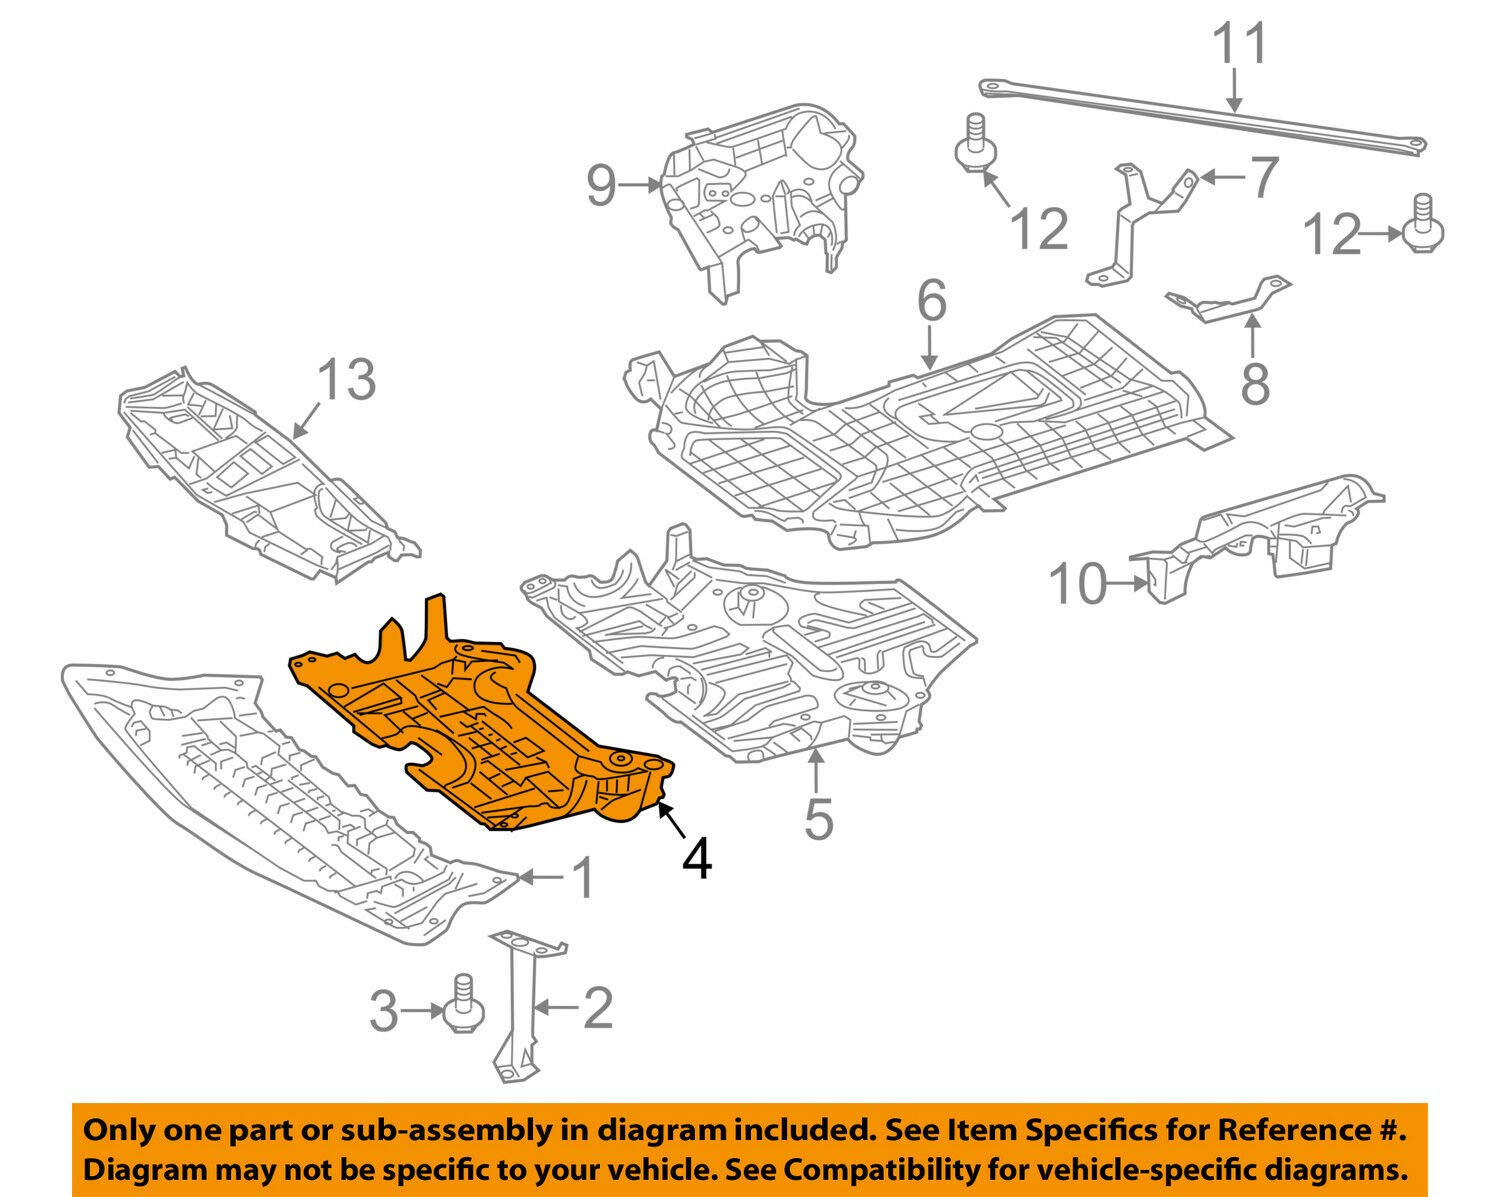 Mercedes Benz Genuine Center Cover 212-520-13-23 by Mercedes Benz (Image #1)